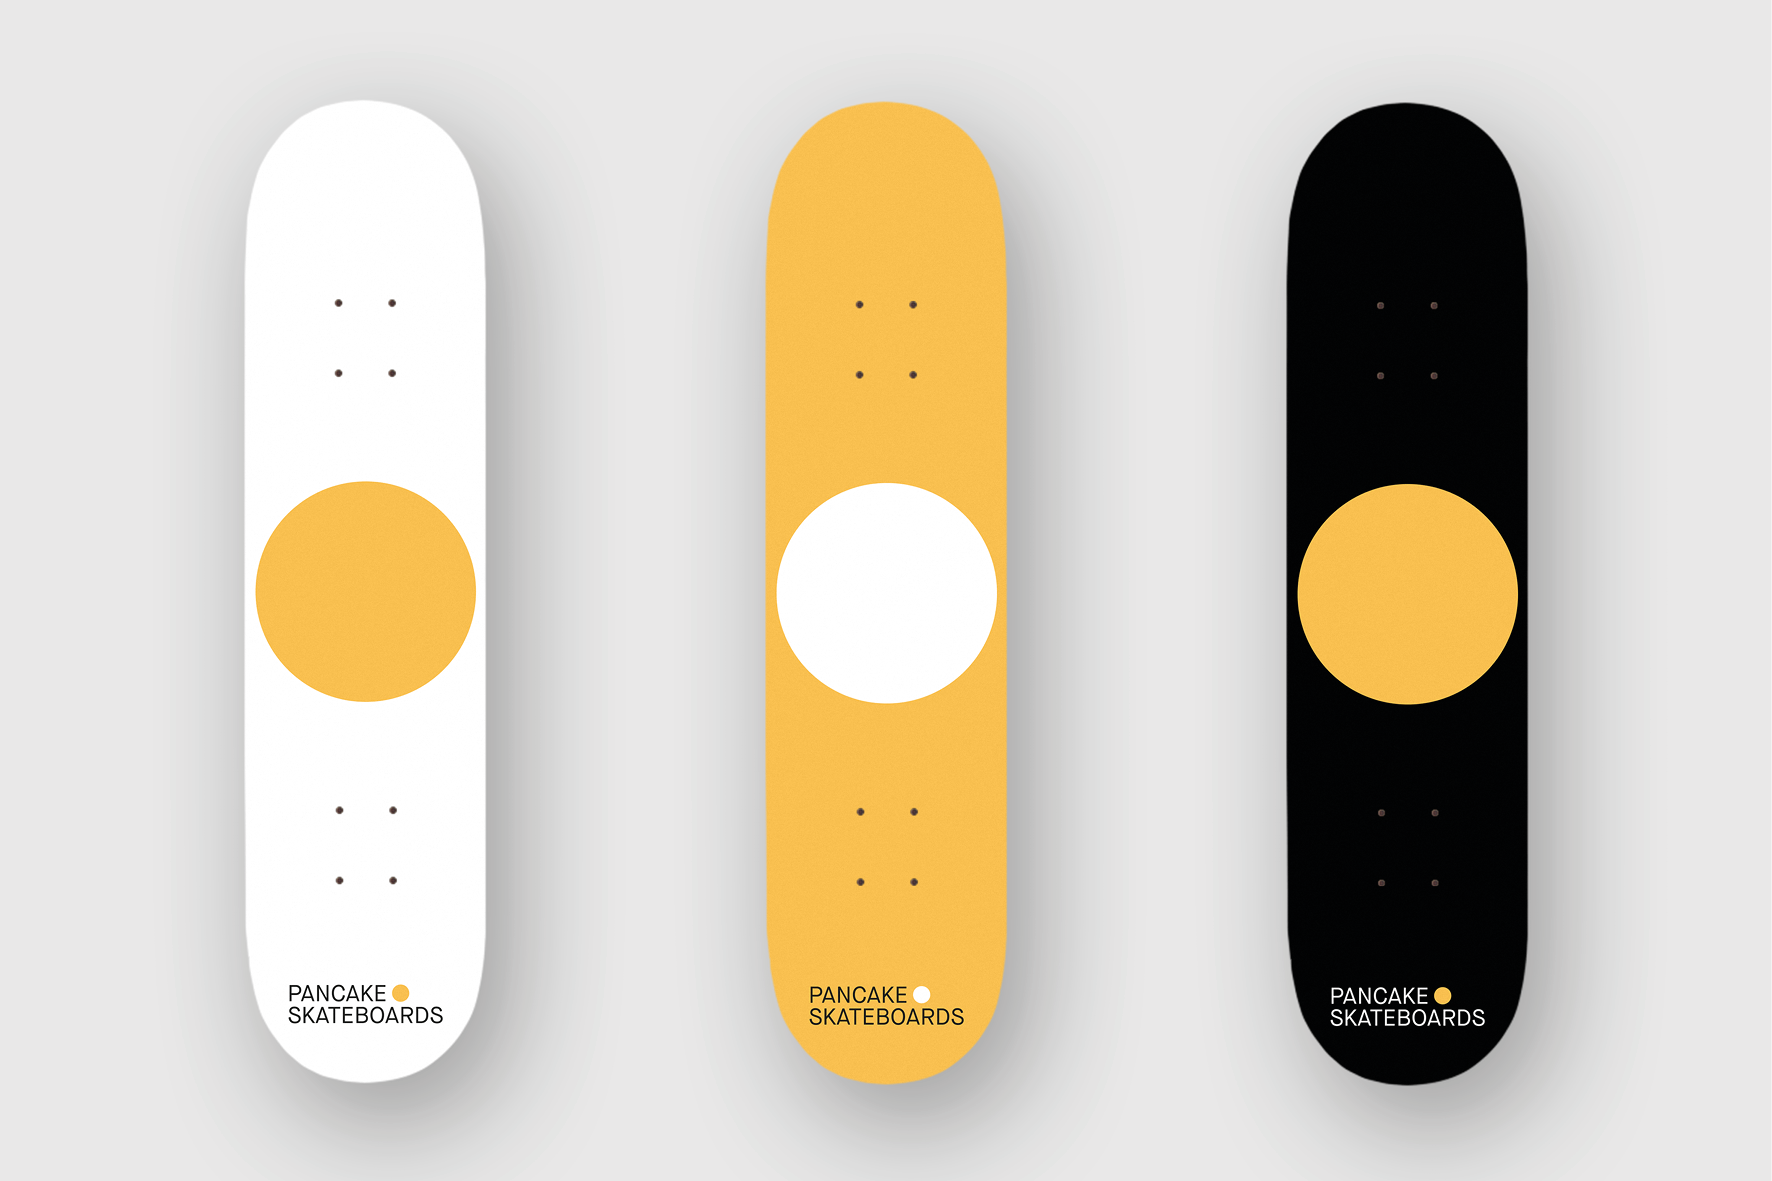 2pancake_skateboards_item-4